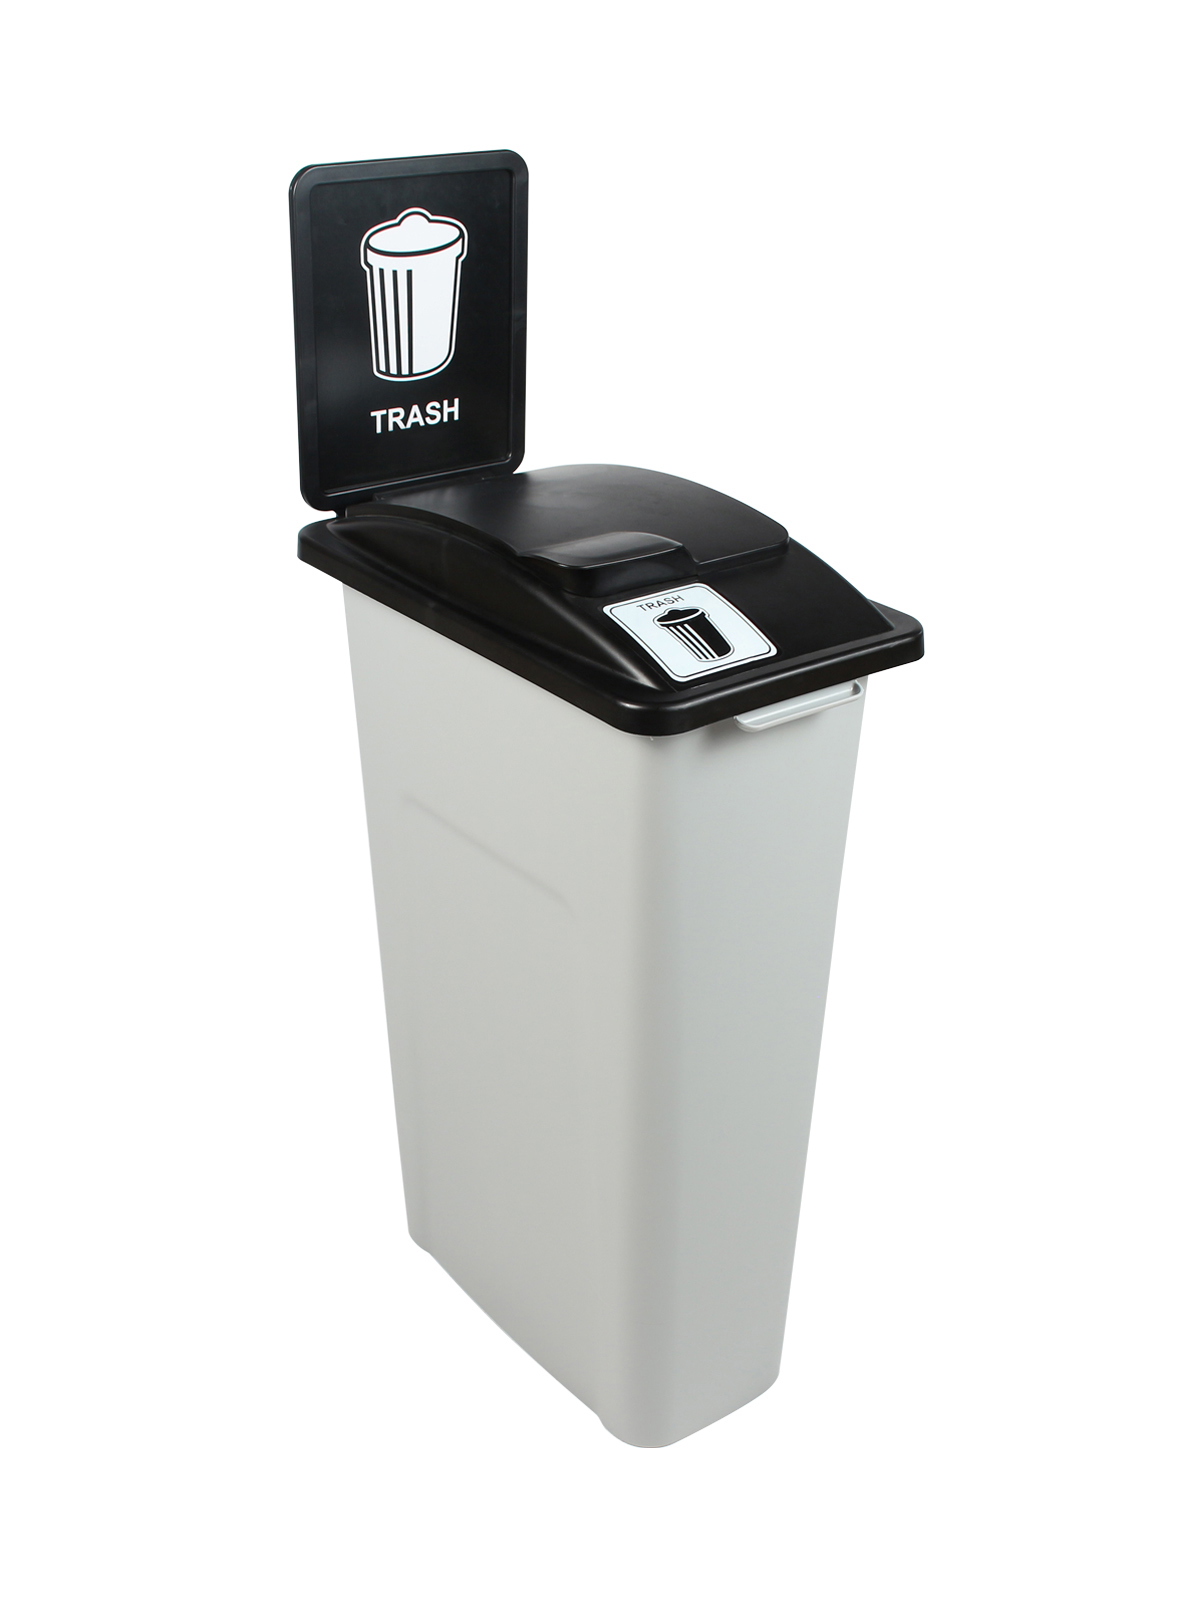 WASTE WATCHER - Single - Trash - Solid Lift - Grey-Black